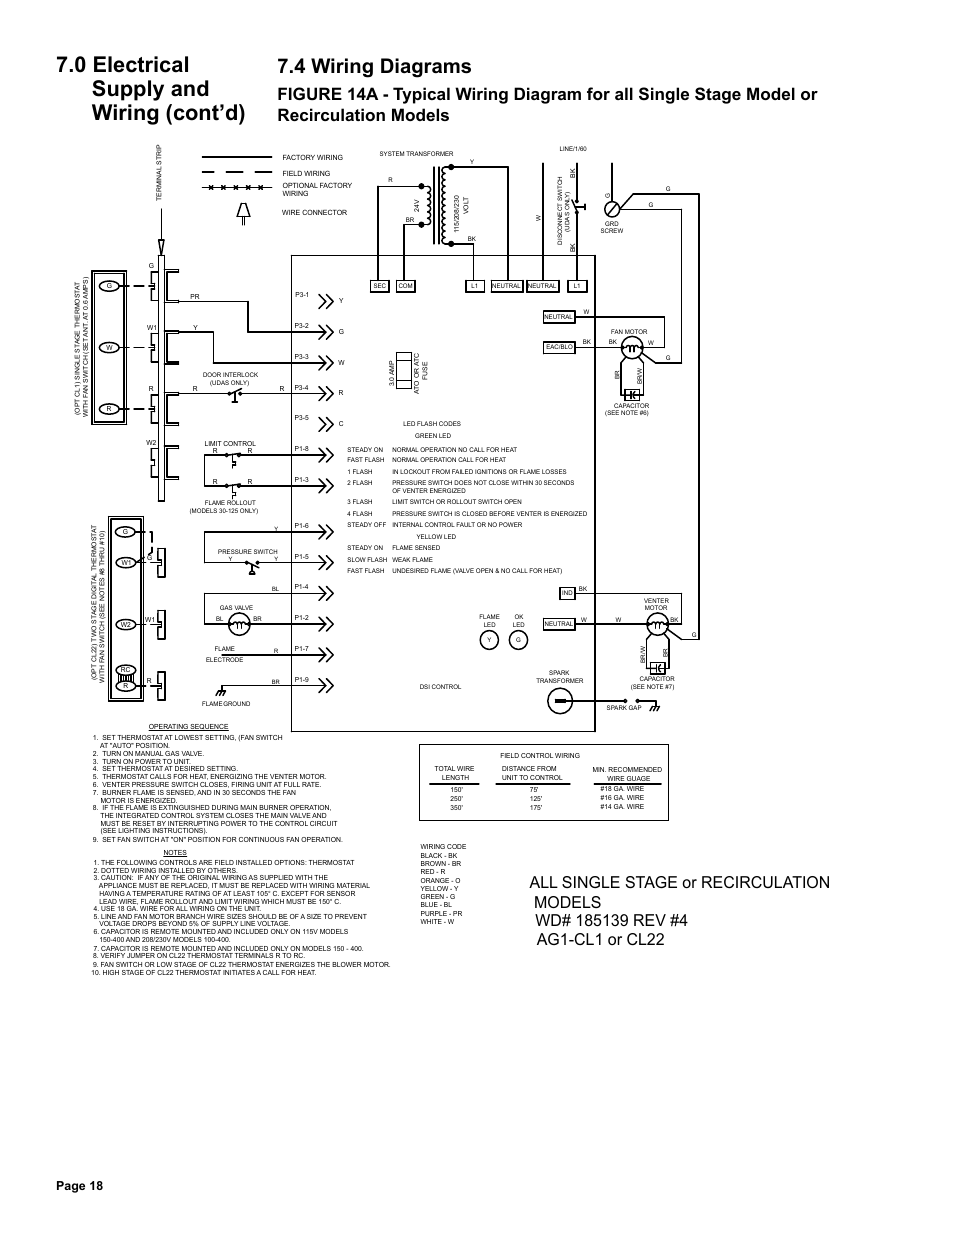 4 wiring diagrams, 0 electrical supply and wiring (cont'd), Page 18 |  Reznor UDAS Unit Installation Manual User Manual | Page 18 / 40